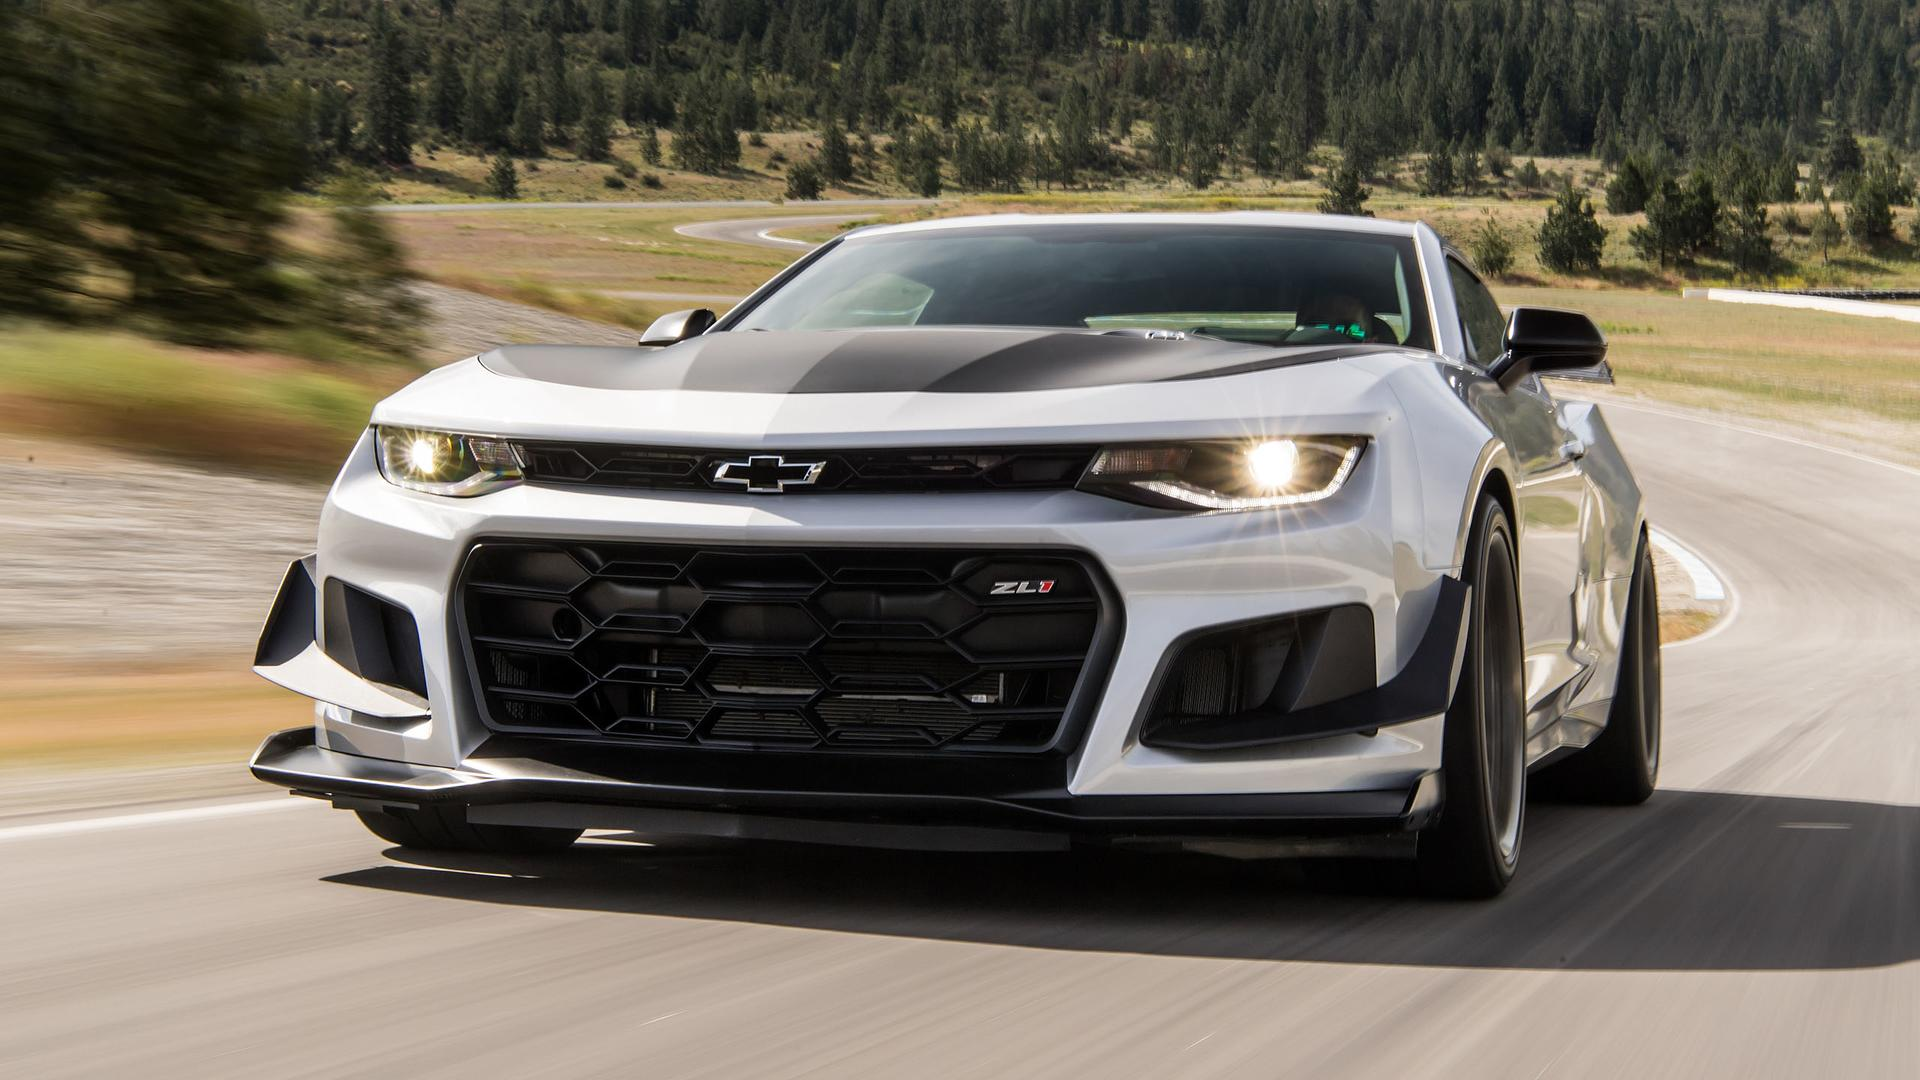 Chevy Camaro Zl1 1le >> 2018 Chevy Camaro Zl1 1le Not Allowed In Europe